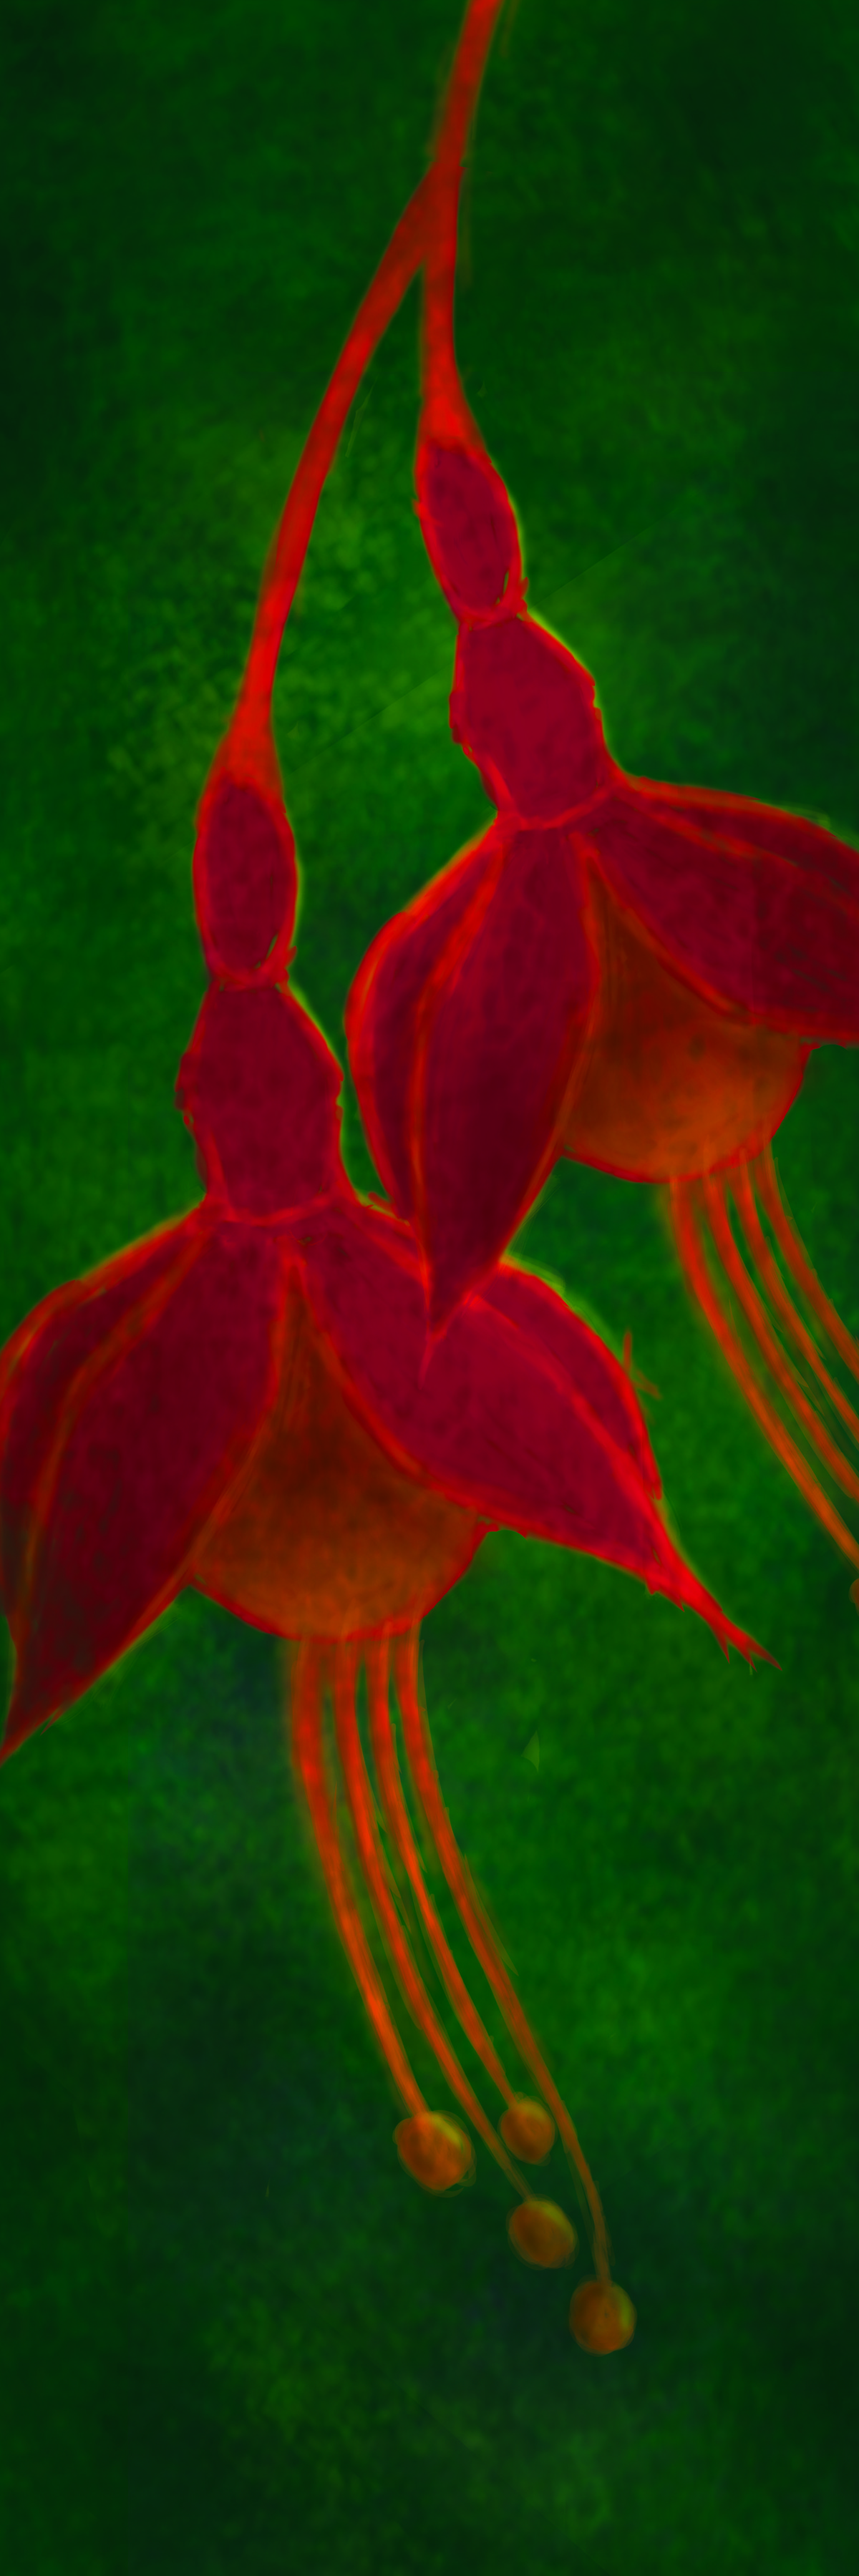 WALL FLOWER by Leya Srinivas, Digital Digital Art, Digital Print on Canvas, English Holly color